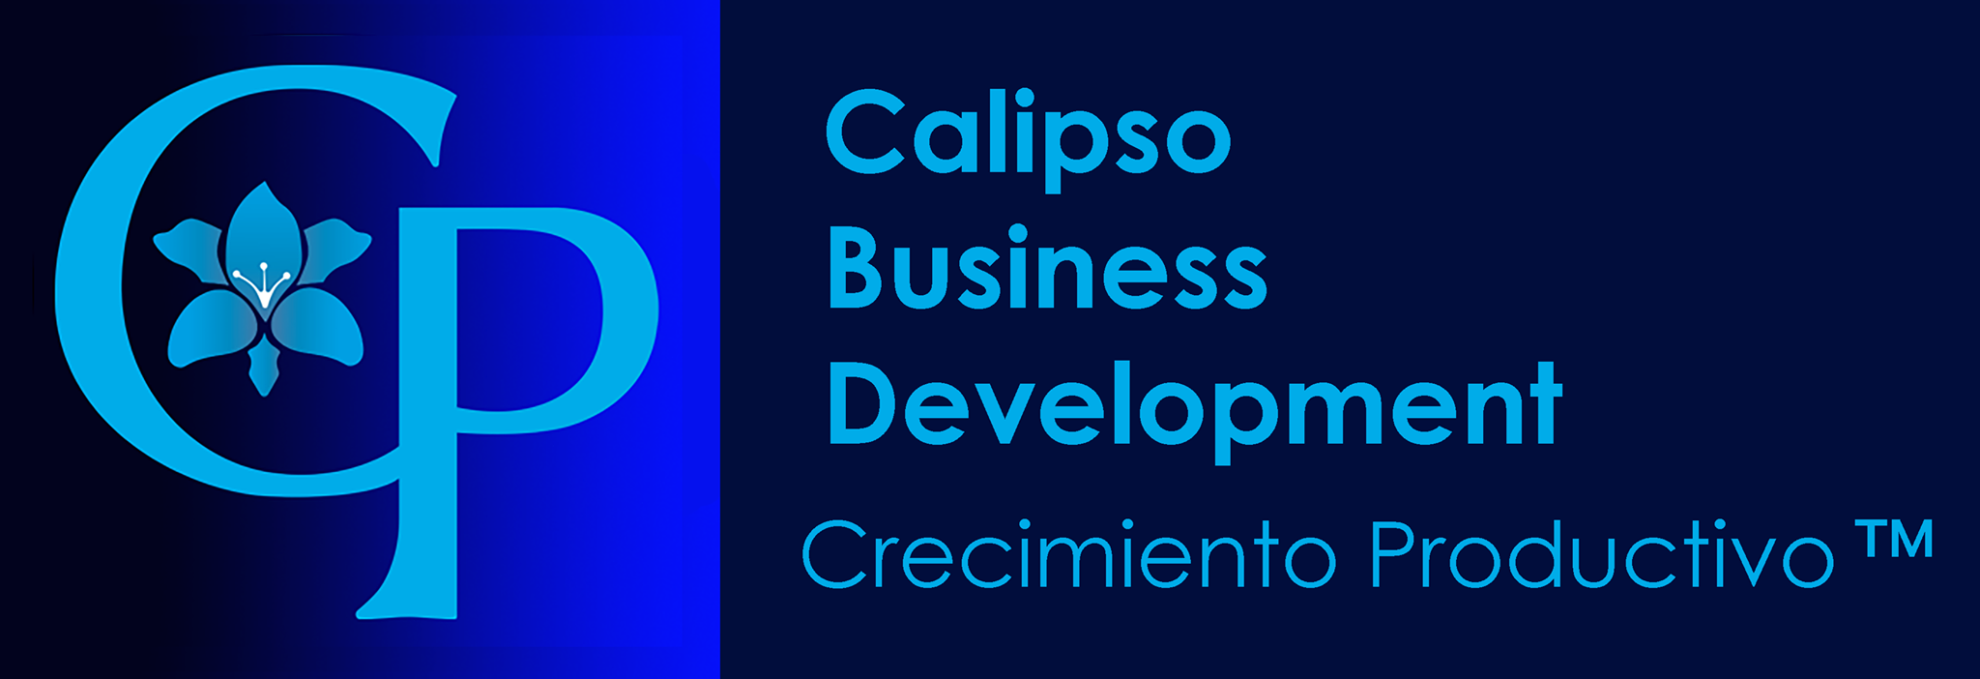 Calipso Business